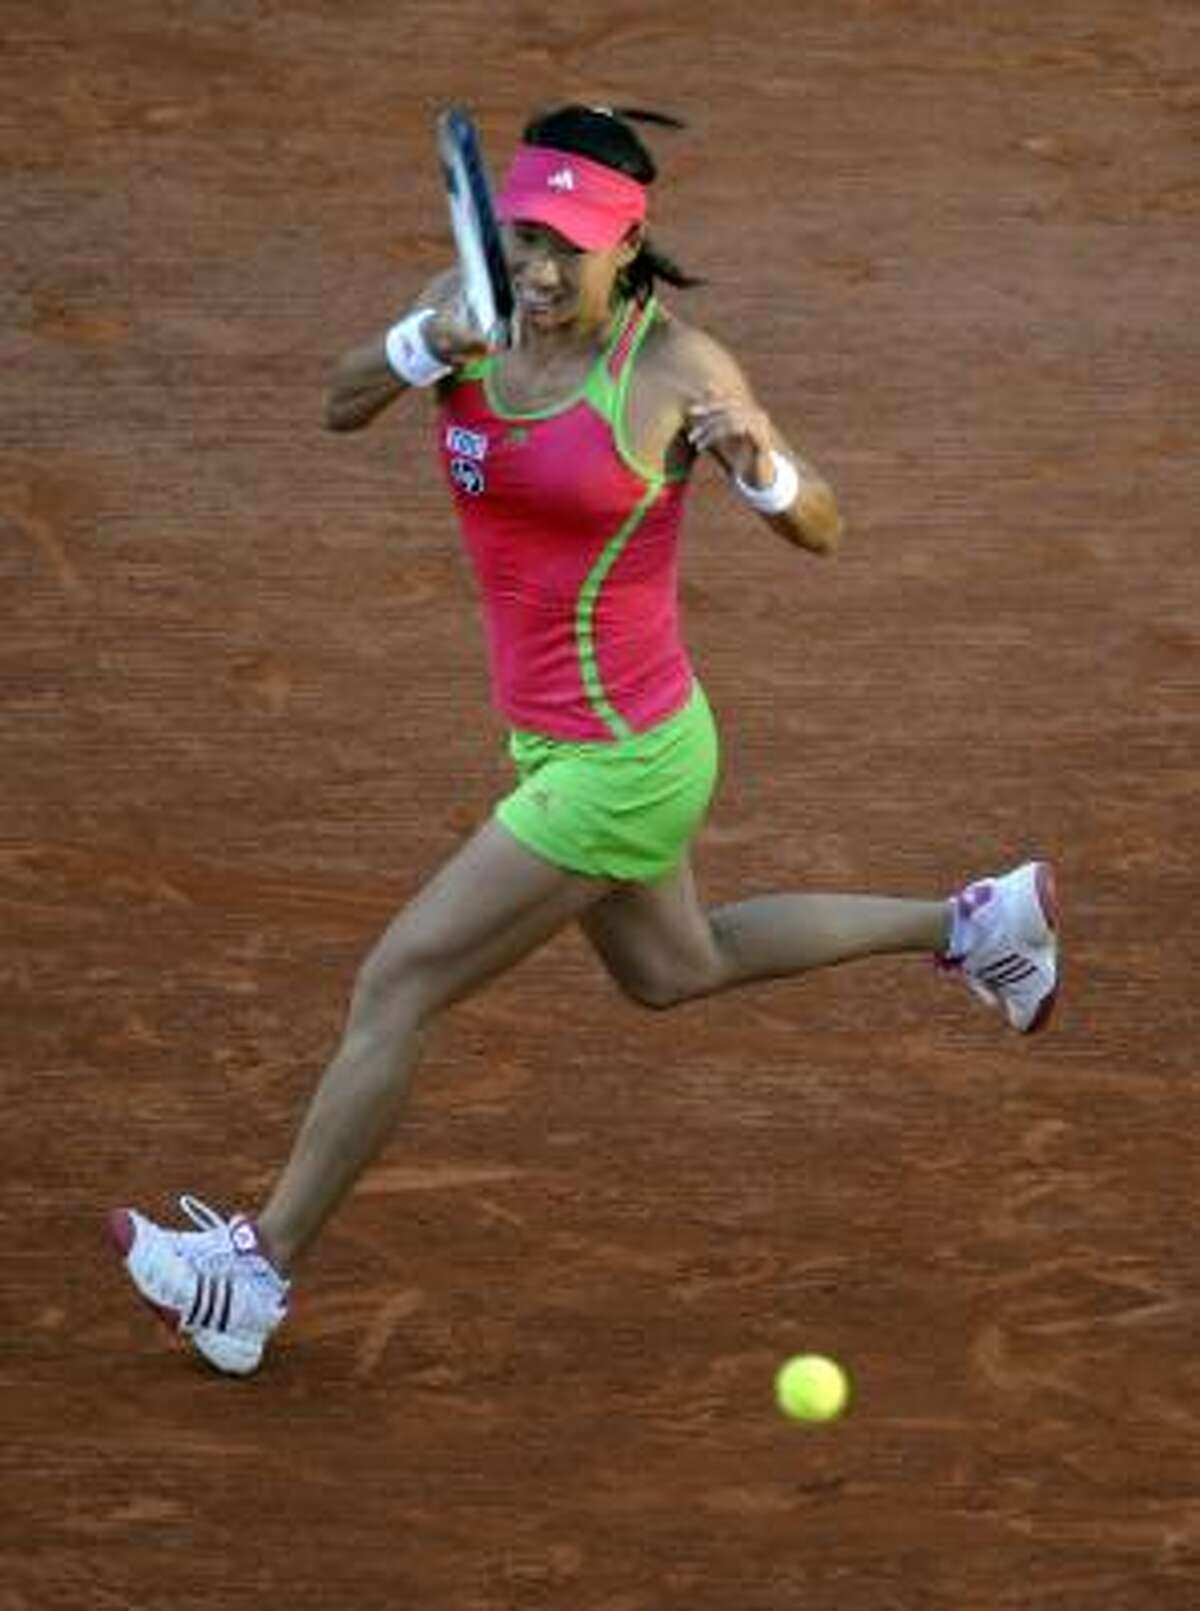 Japan's Kimiko Date-Krumm returns the ball to Denmark's Caroline Wozniacki.